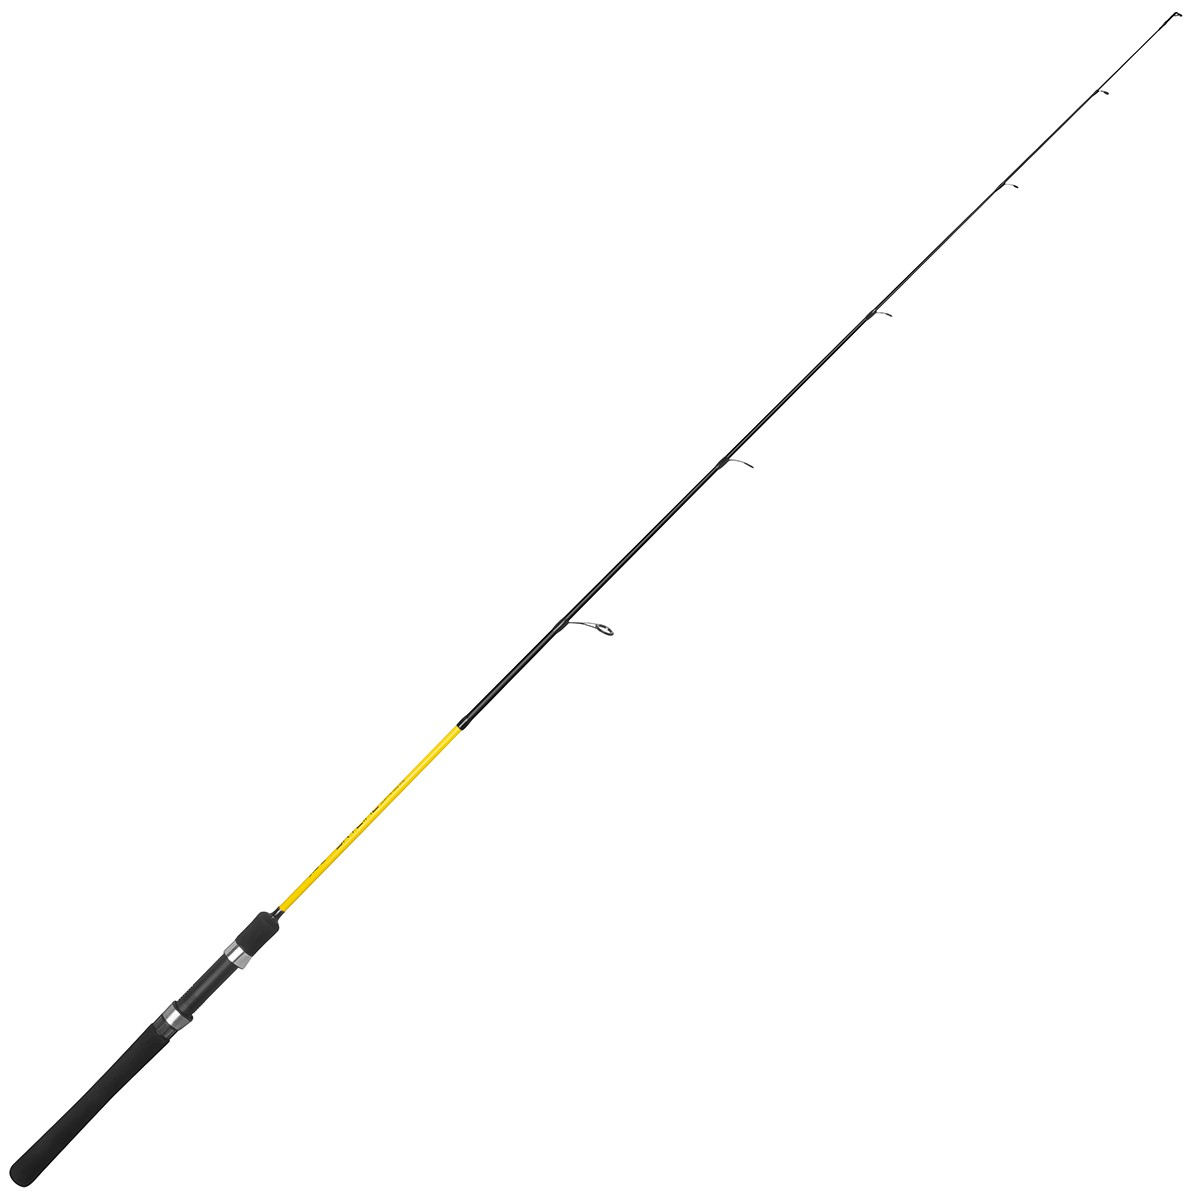 Vara Saint Plus Skyline 501-SP 7 - 17Lbs 1,50m - Inteiriça - P/ Molinete